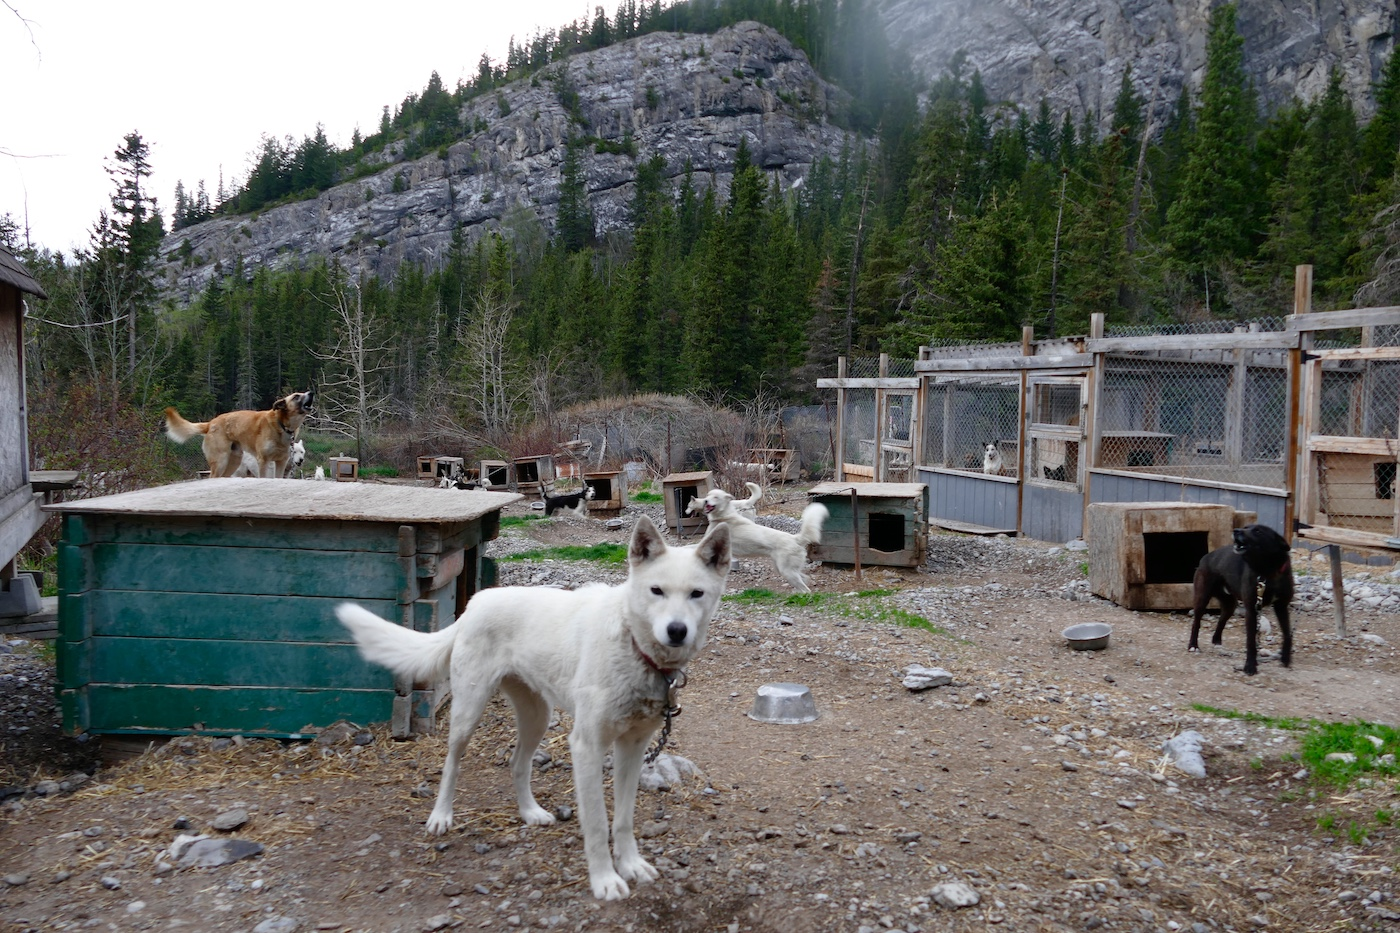 Sled dogs suffer in the summer